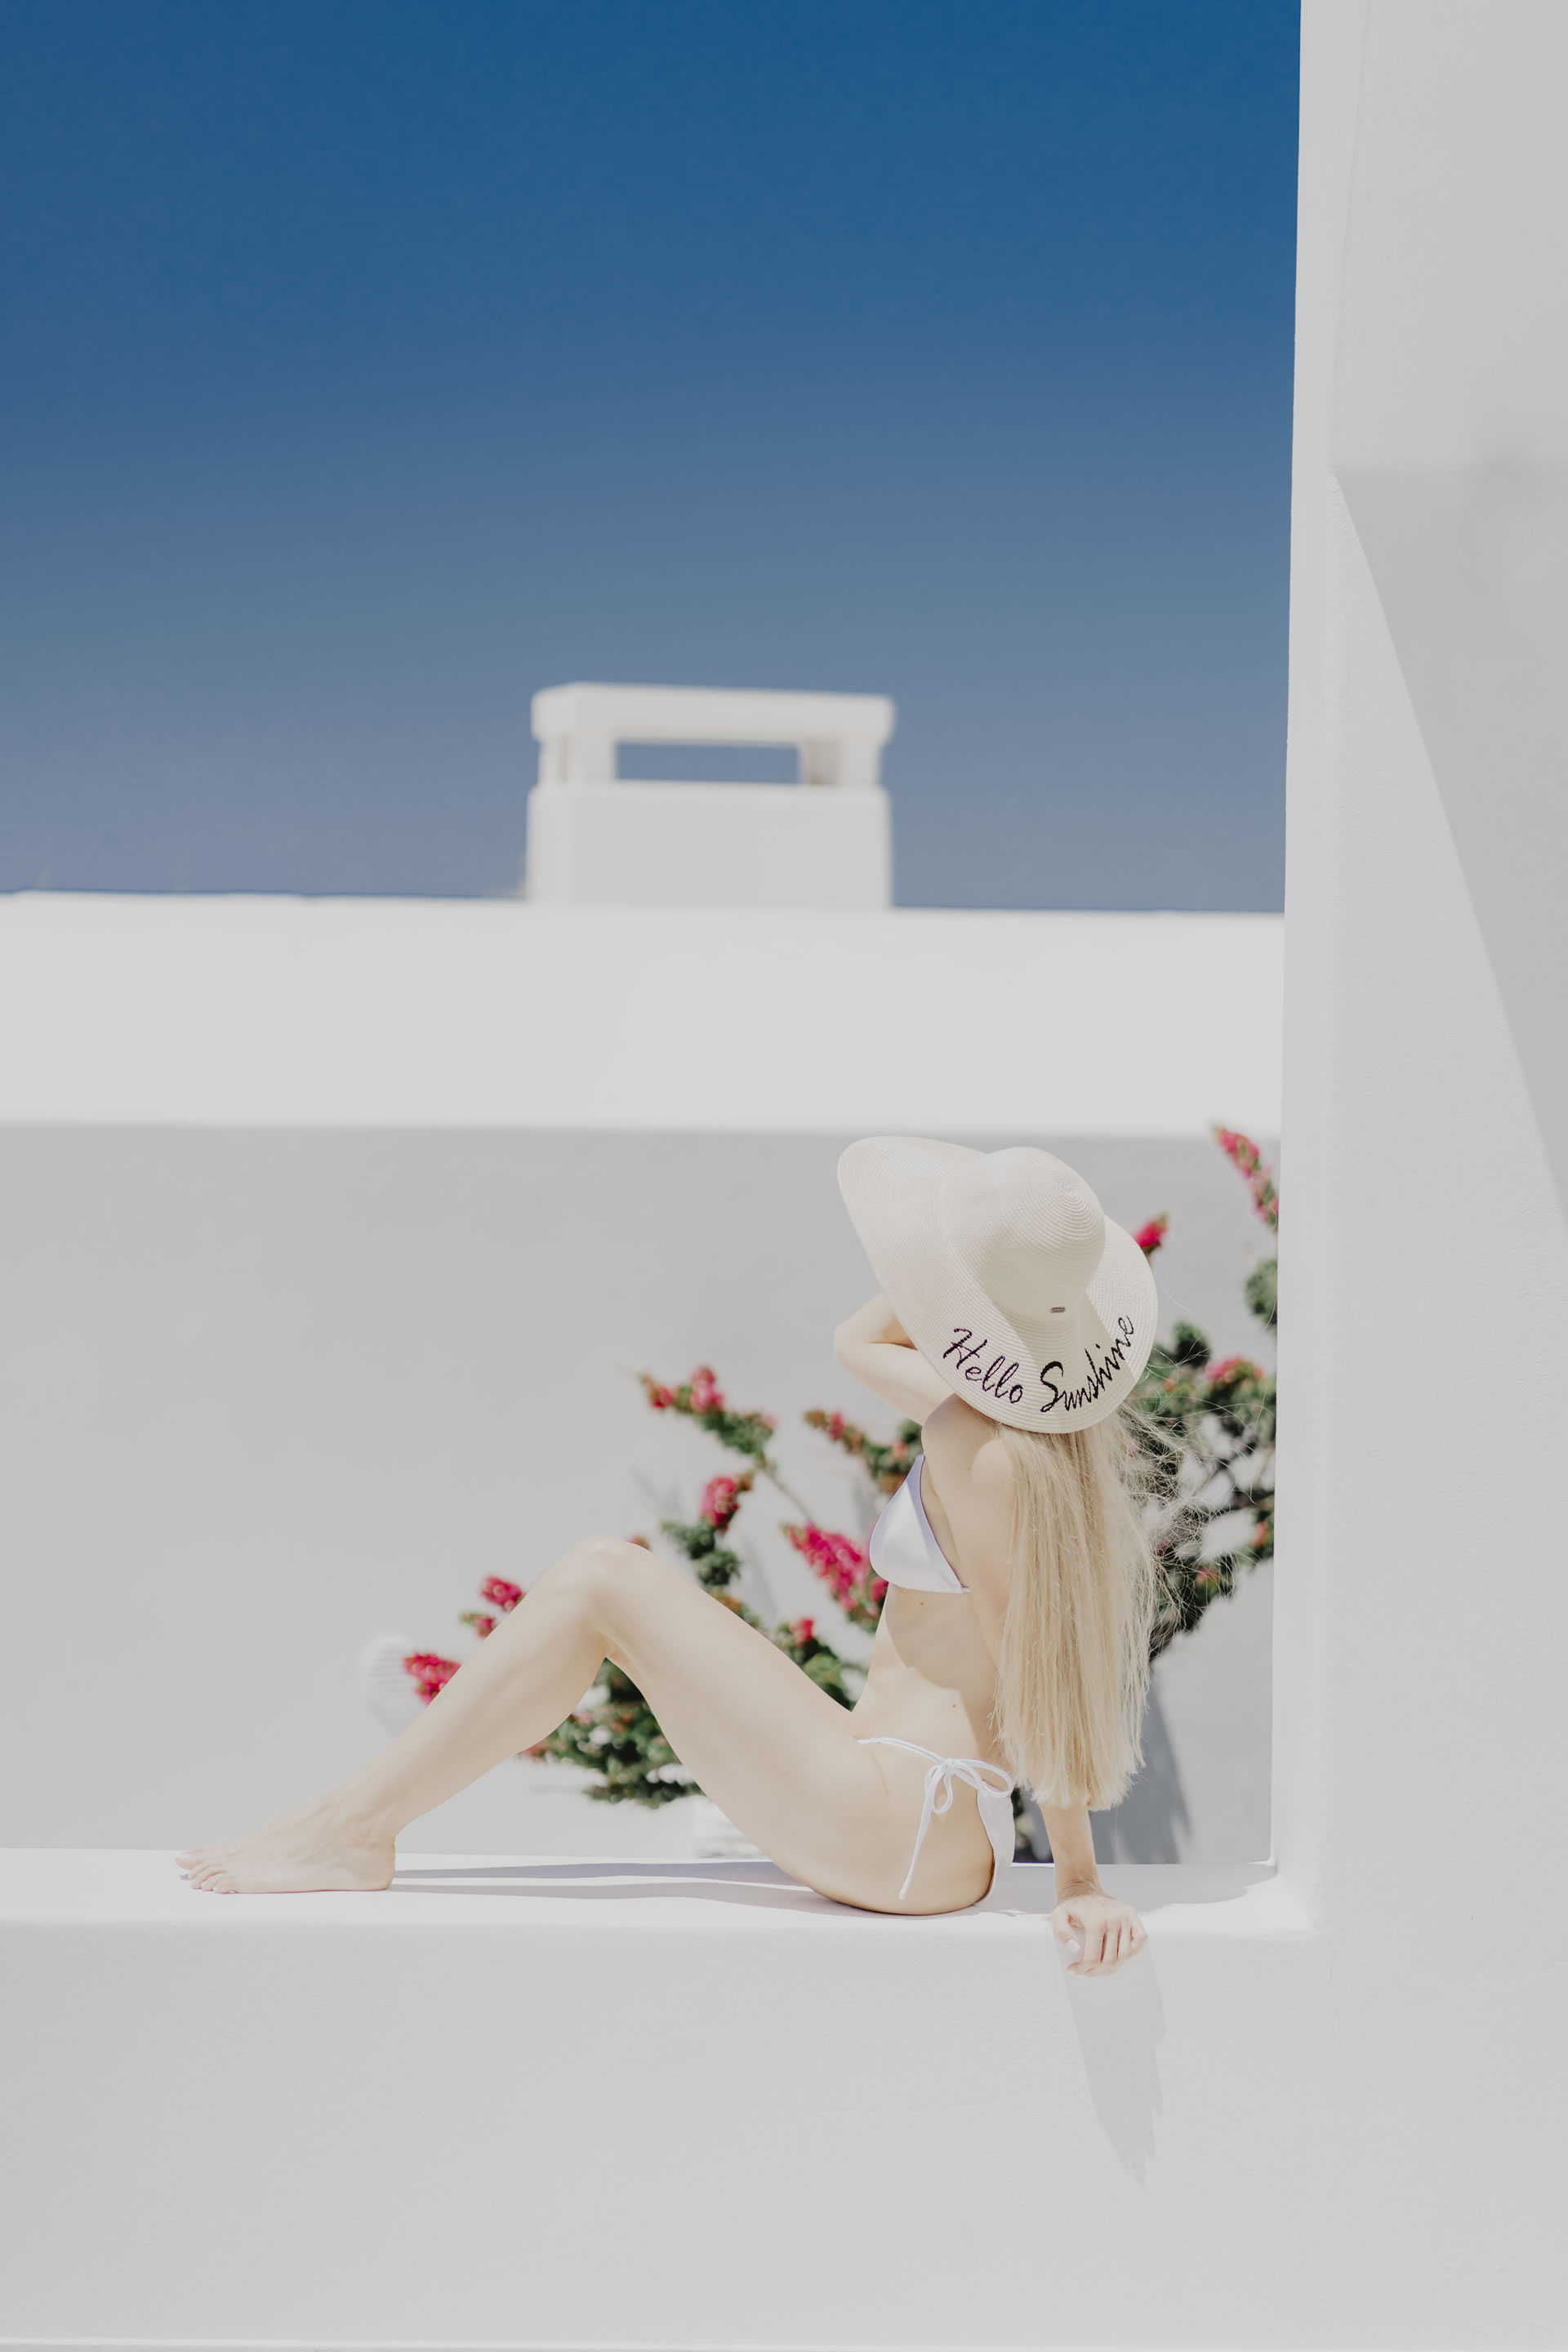 - 2 :: Santorini, a white wedding in a white island :: Luxury wedding photography - 1 ::  - 2